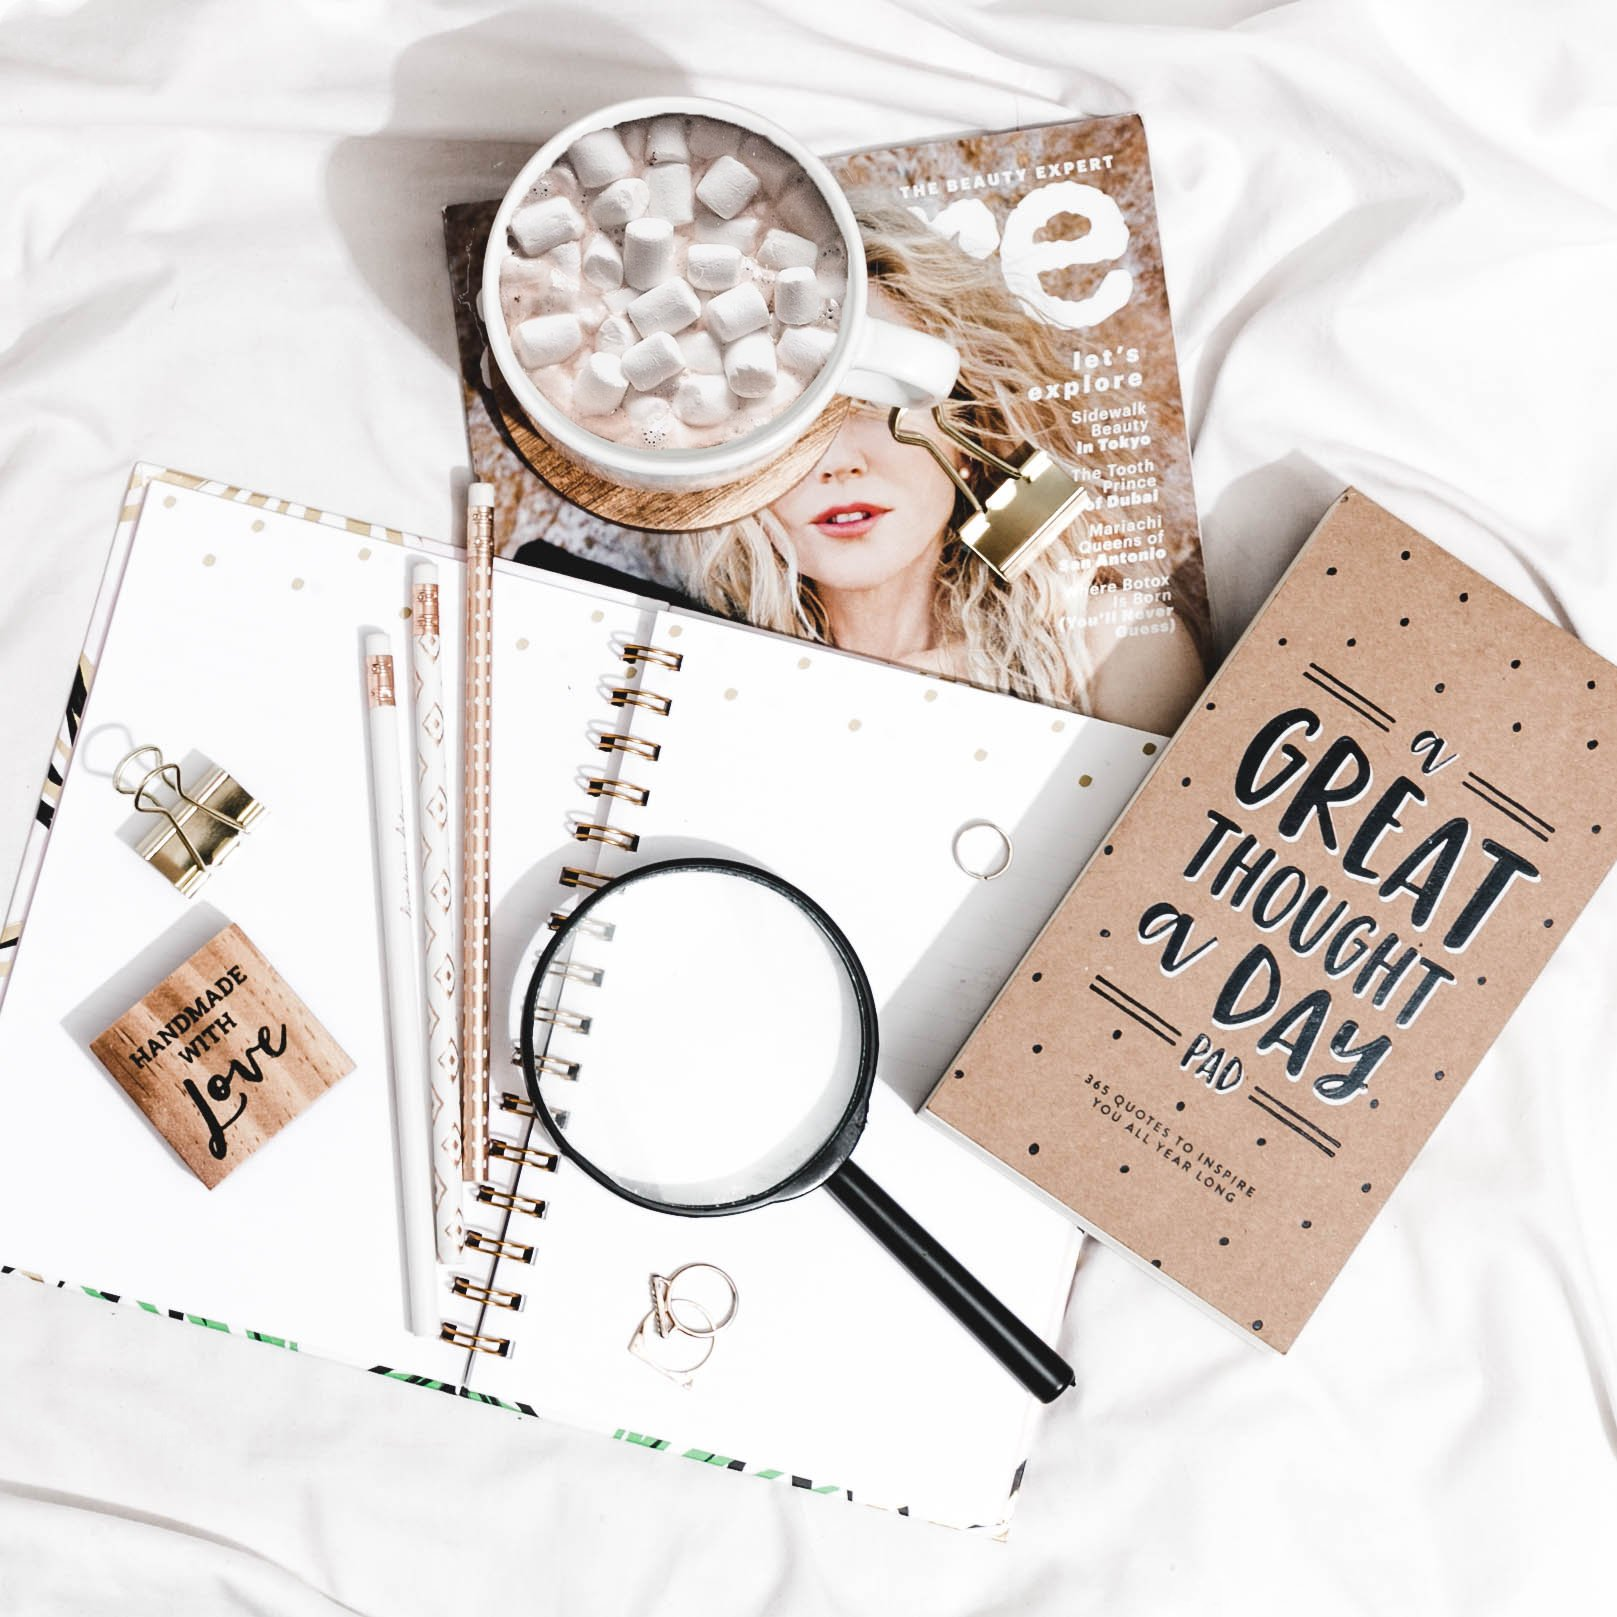 8 Things to Do After Starting a Blog Free Flatlay 14 Jan 2019